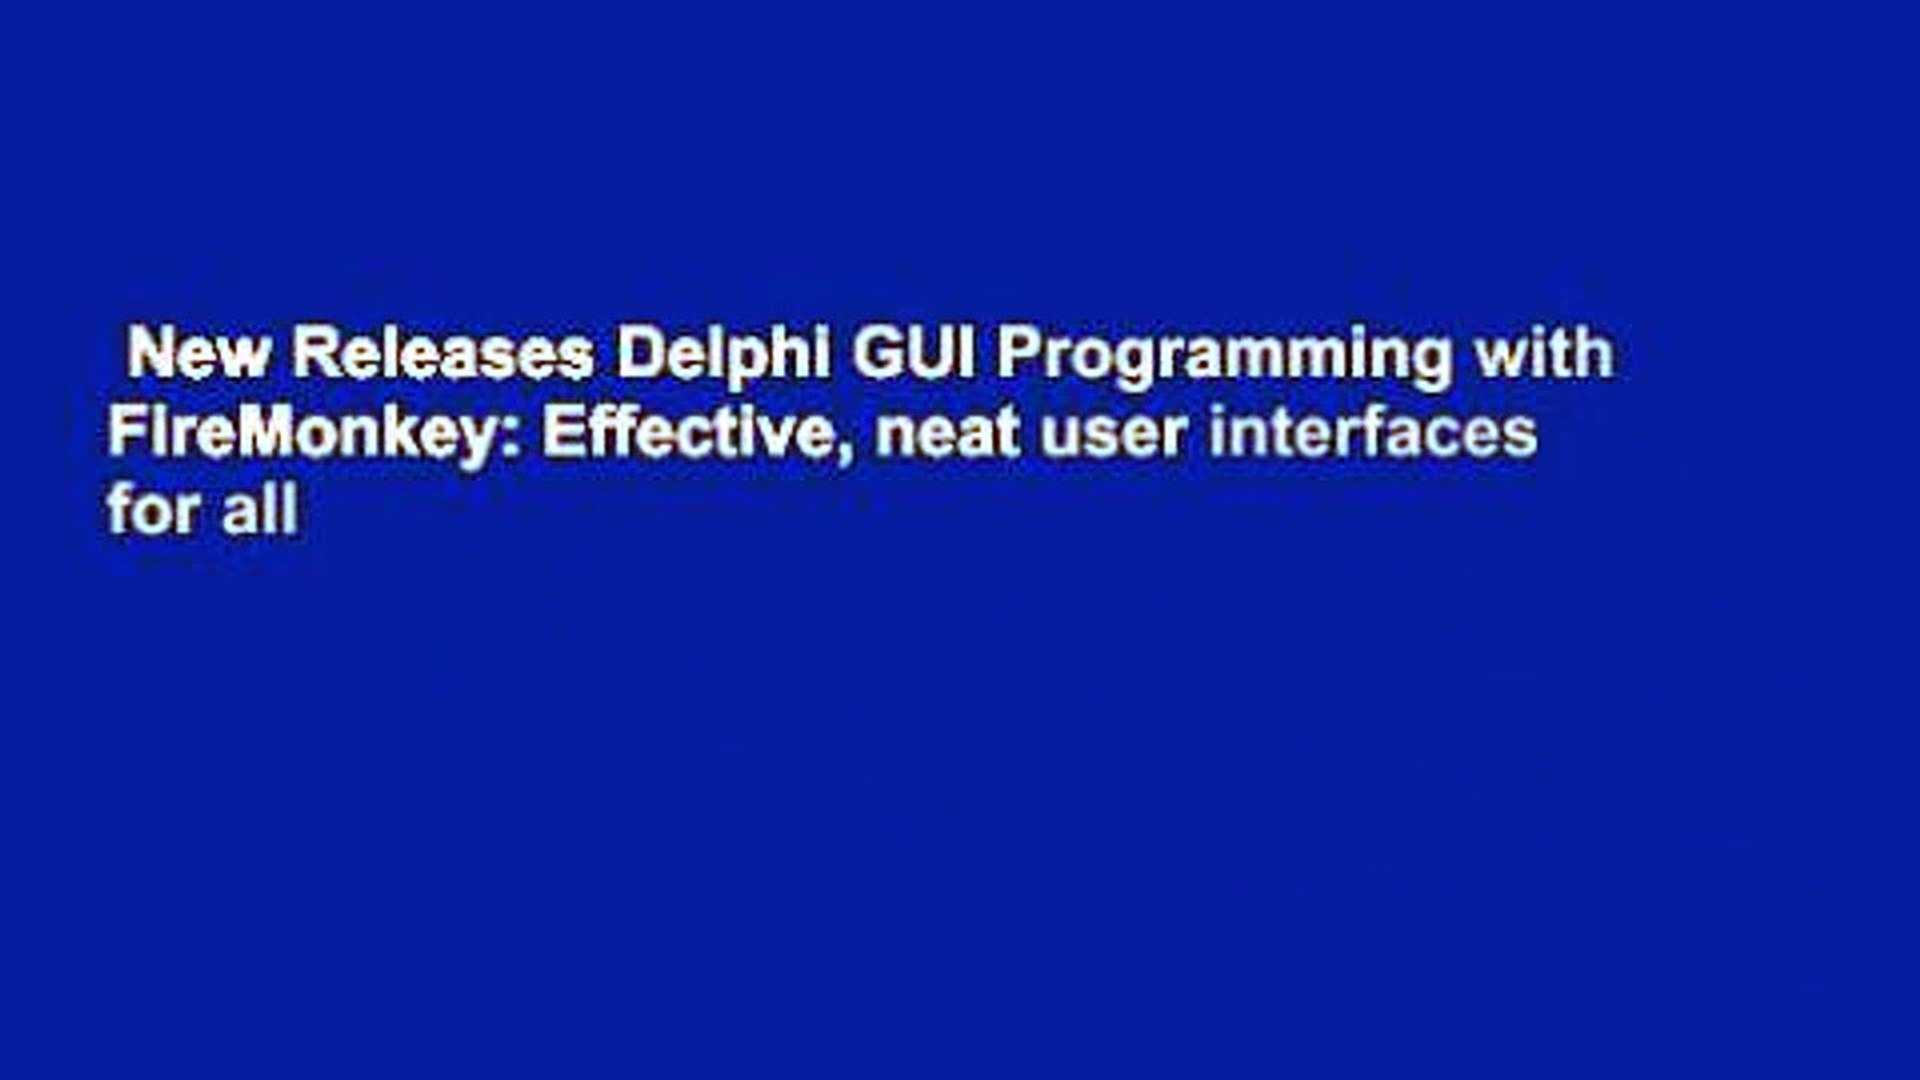 New Releases Delphi GUI Programming with FireMonkey: Effective, neat user  interfaces for all